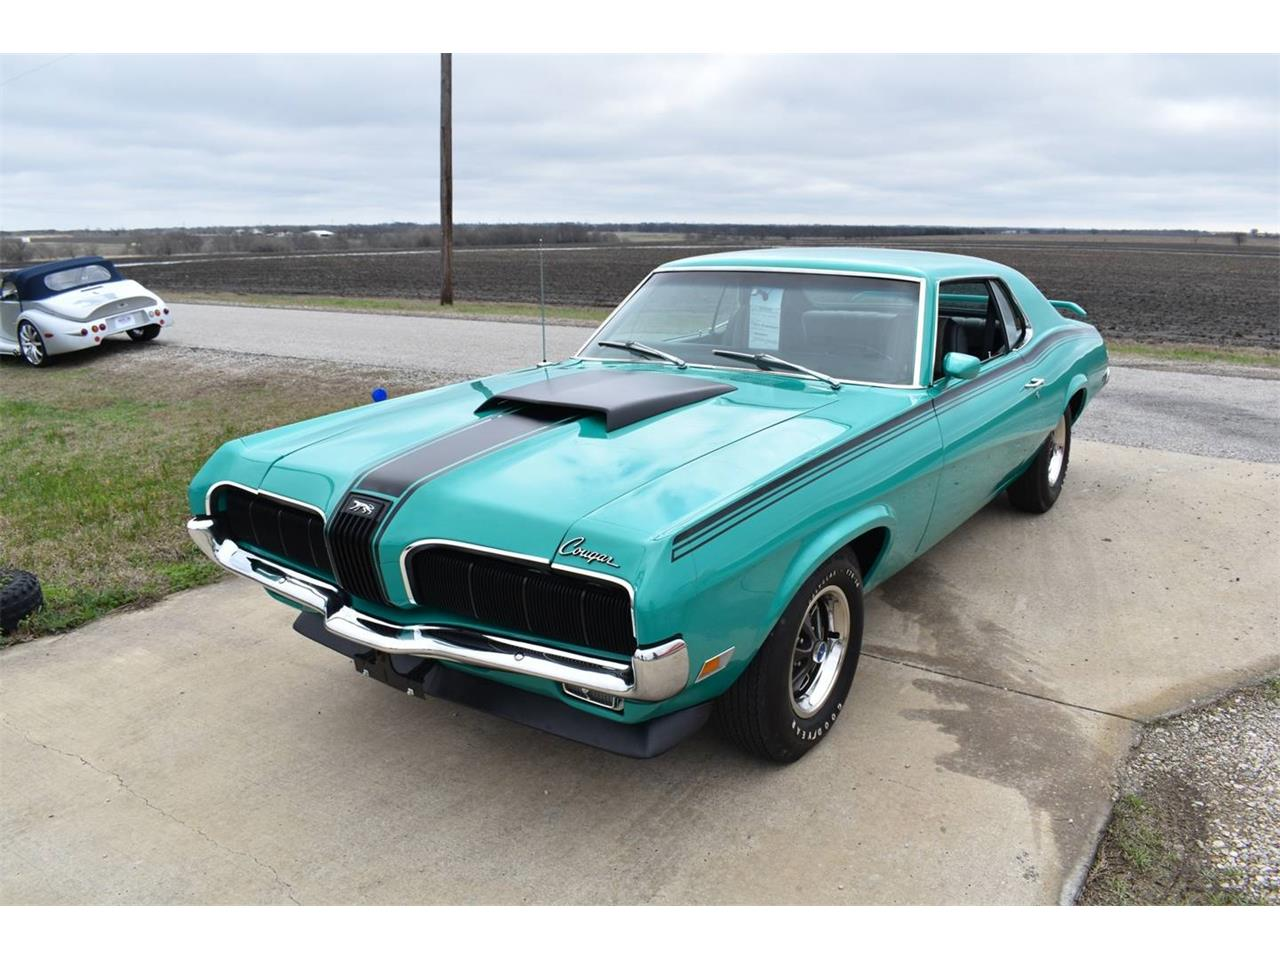 Large Picture of 1970 Cougar located in Waxahachie Texas Auction Vehicle - OI1E